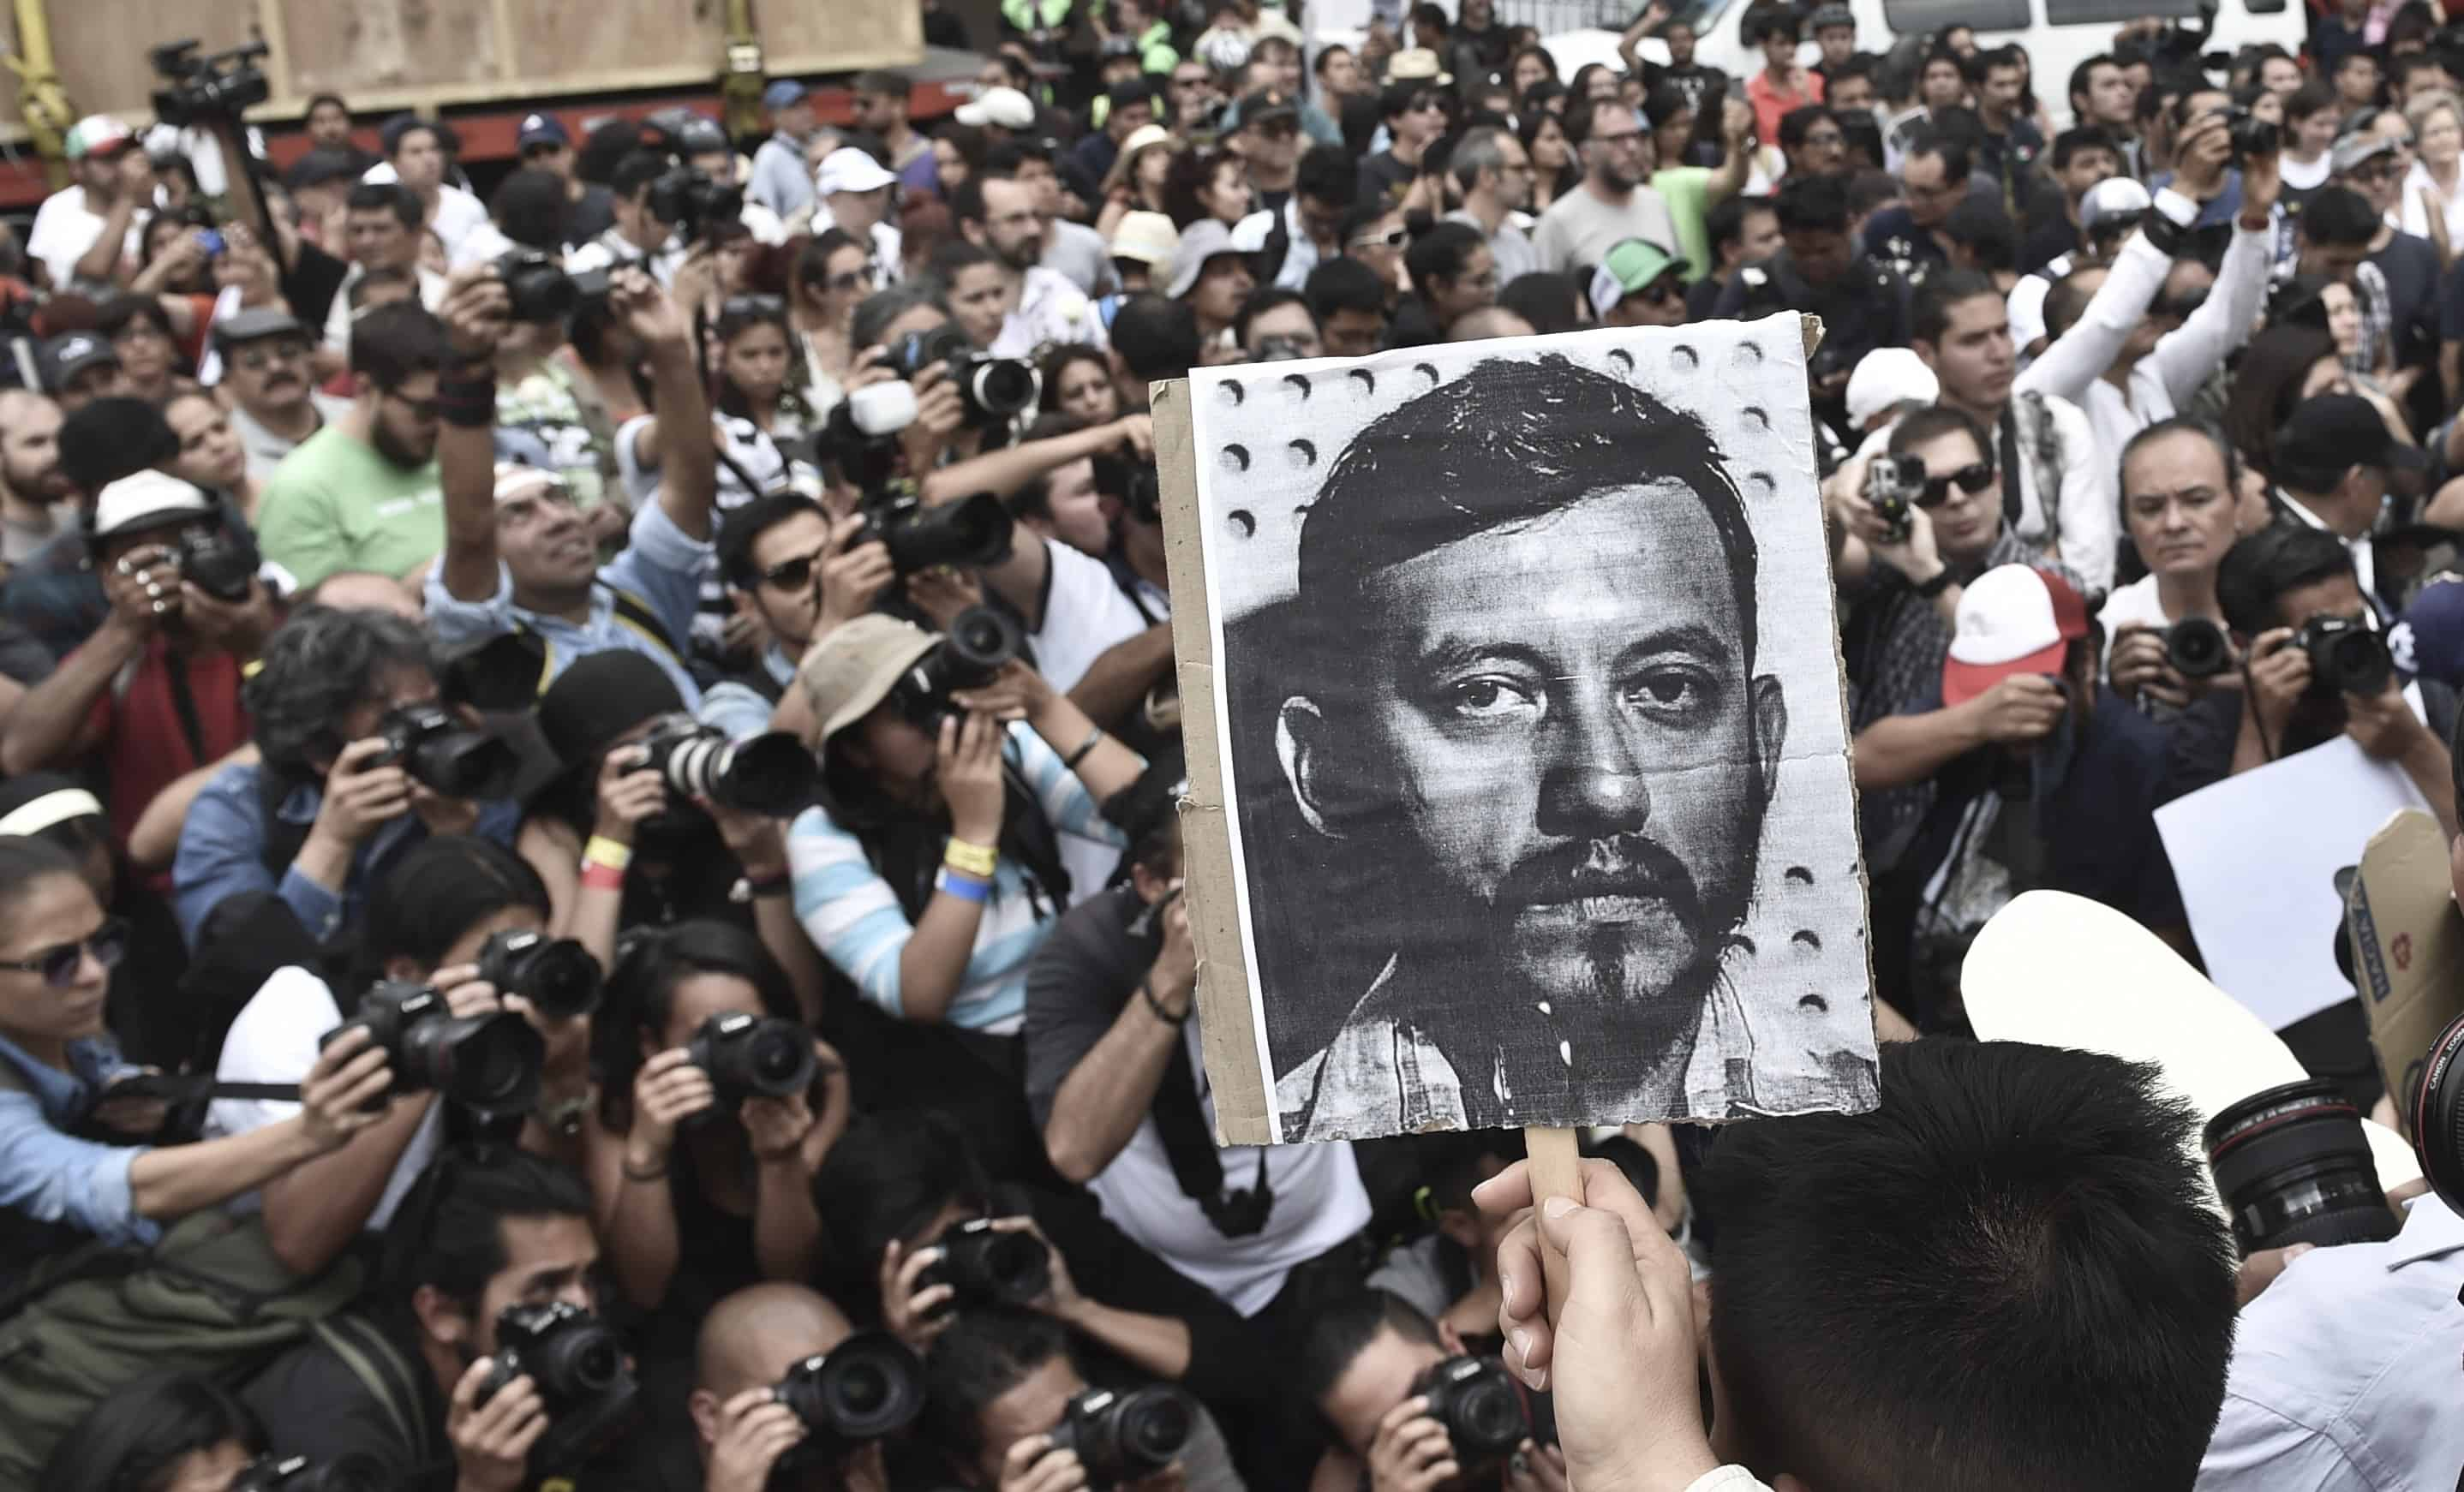 Mexican photojournalists hold pictures of their murdered colleague Rubén Espinosa during a demonstration at the Angel of Independence square in Mexico City, on Aug. 2, 2015.